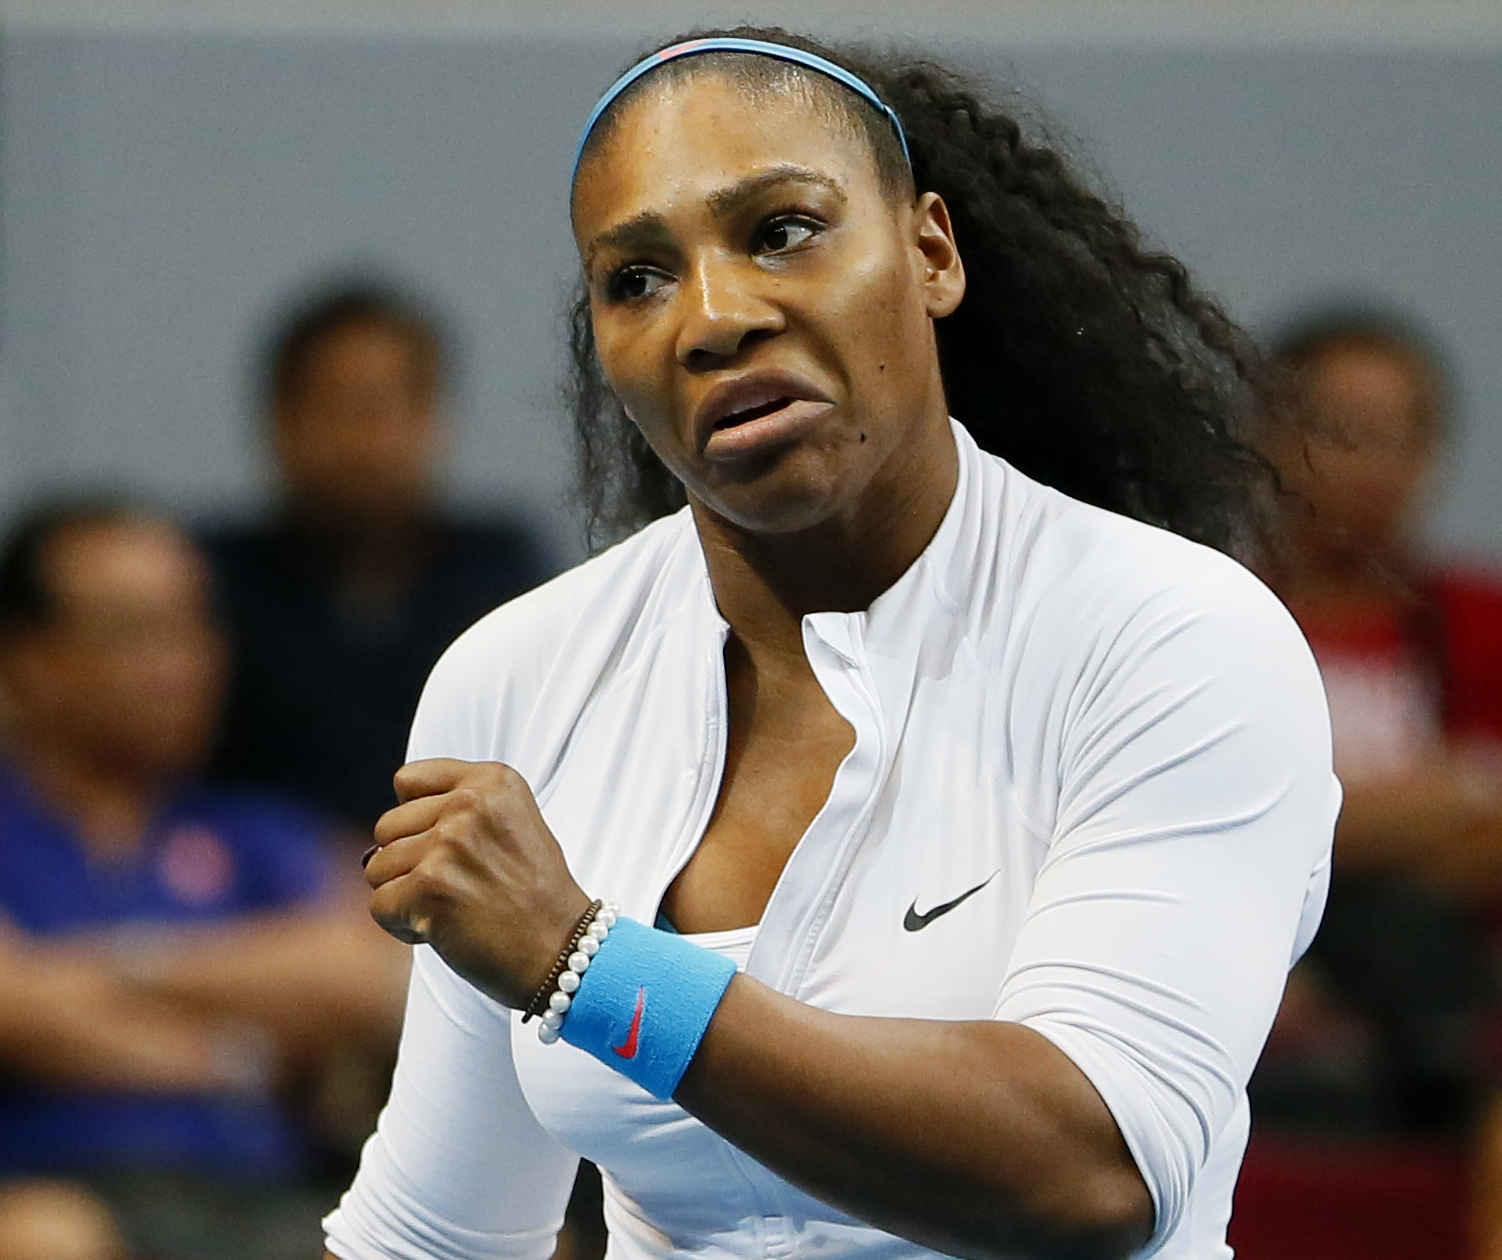 Serena Williams of the Philippine Mavericks reacts to her losing a point against Ana Ivanovic during the women's singles match of the 2015 International Premier Tennis League (IPTL) Sunday, Dec. 6, 2015. Photo: AP